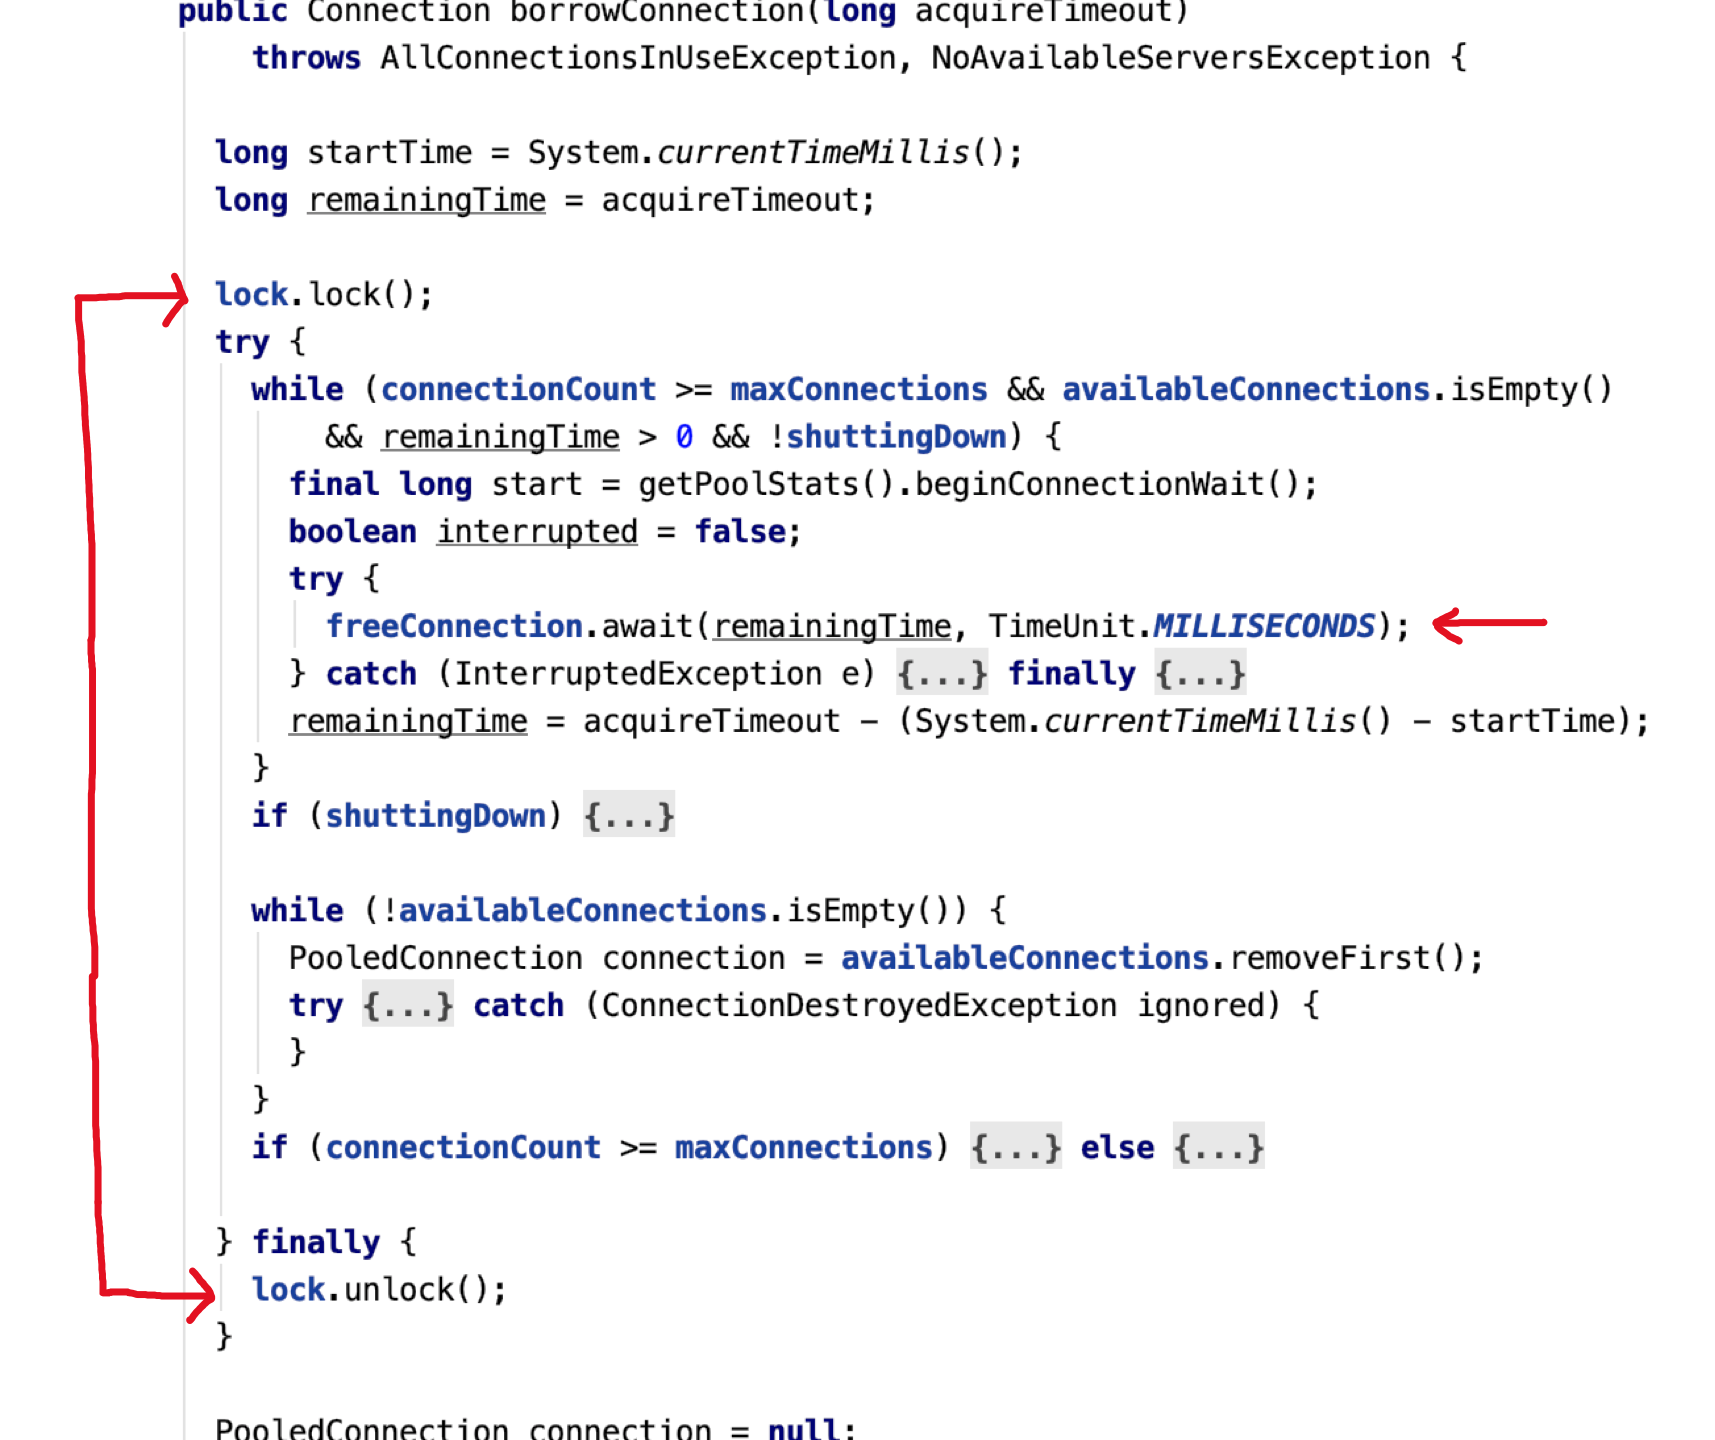 Figure 5: borrowConnection implementation locking - Long code snippet with 6 collapsed sections of code. An arrow spanning the majority of the snippet highlights that all that code is between locking and unlocking. A second arrow points to an await while holding the lock.